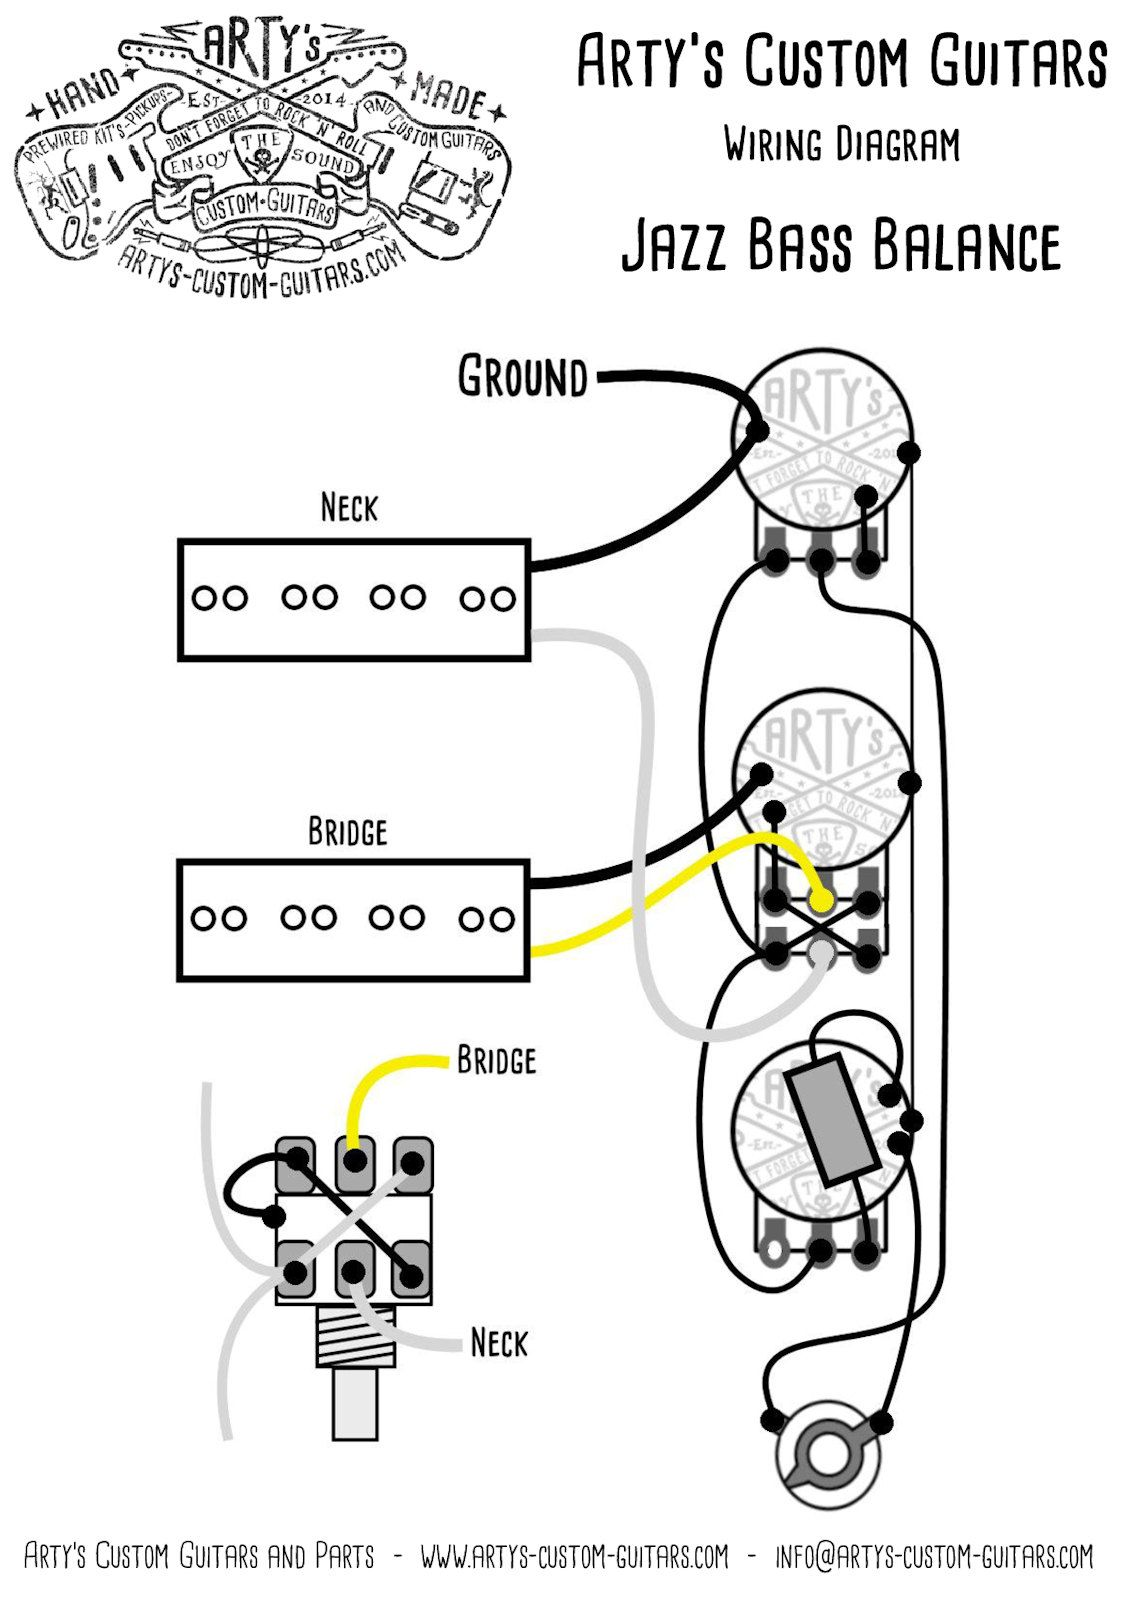 Artys Custom Guitars Balance Jazz Bass Pre Wired Prewired Kit Guitar Wiring Diagram Assembly Harness Precision J P